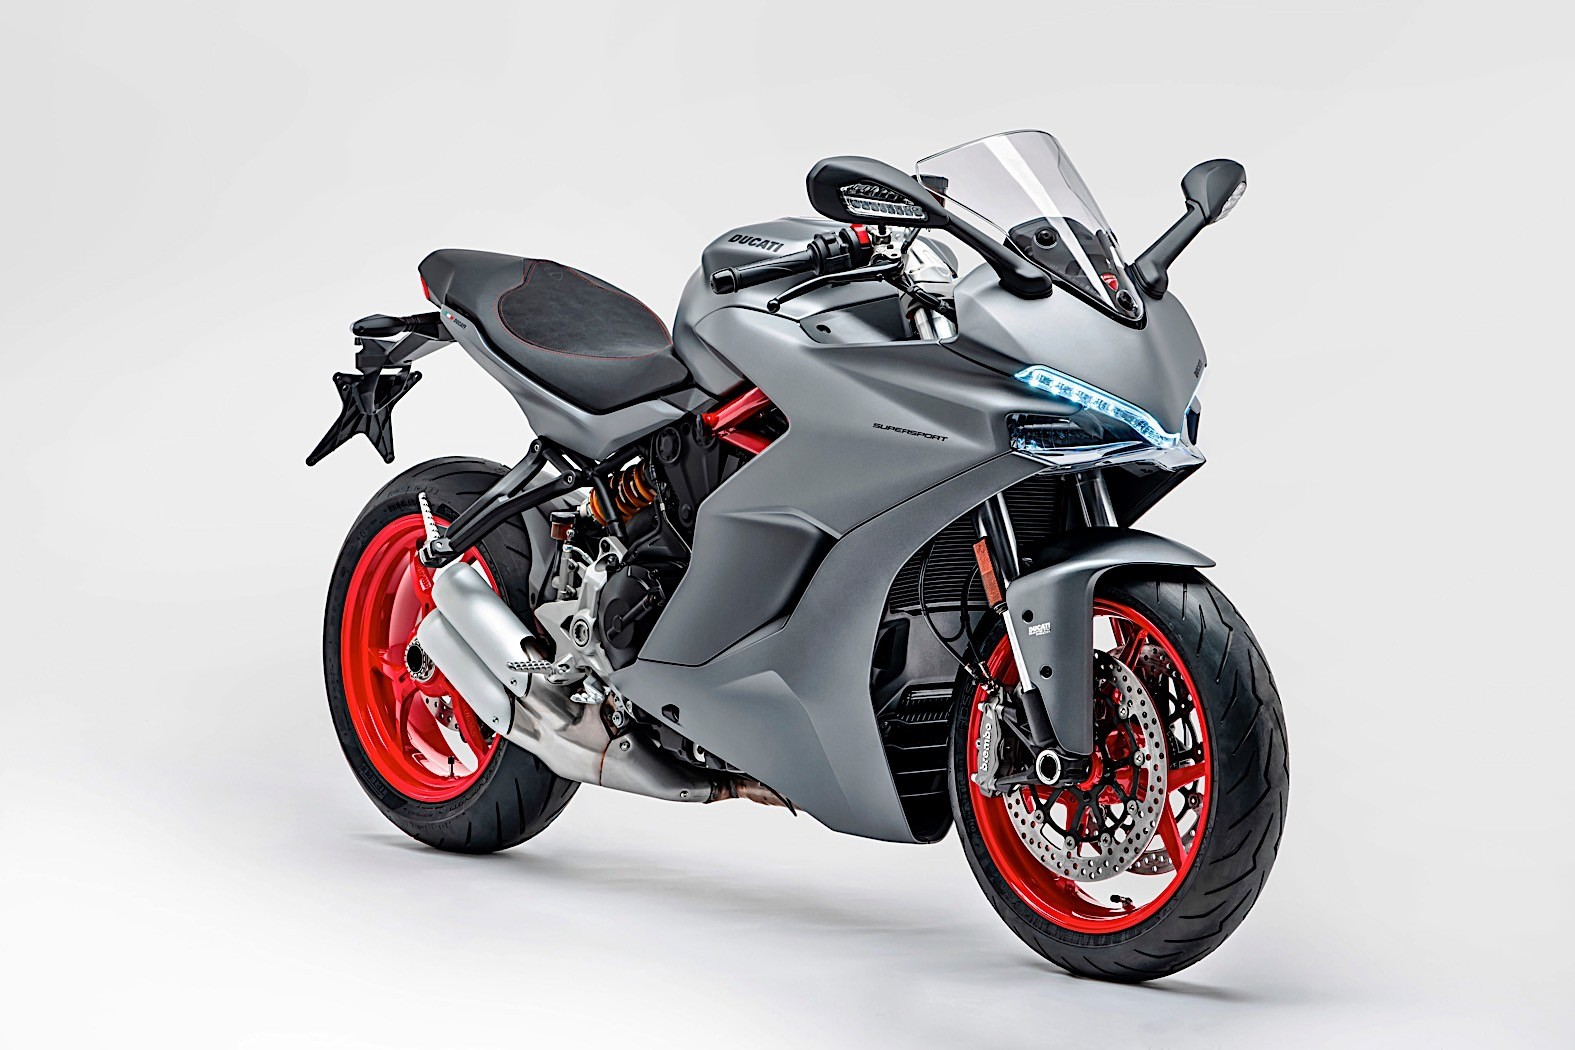 2019 Ducati Supersport Drops The Usual Red For New